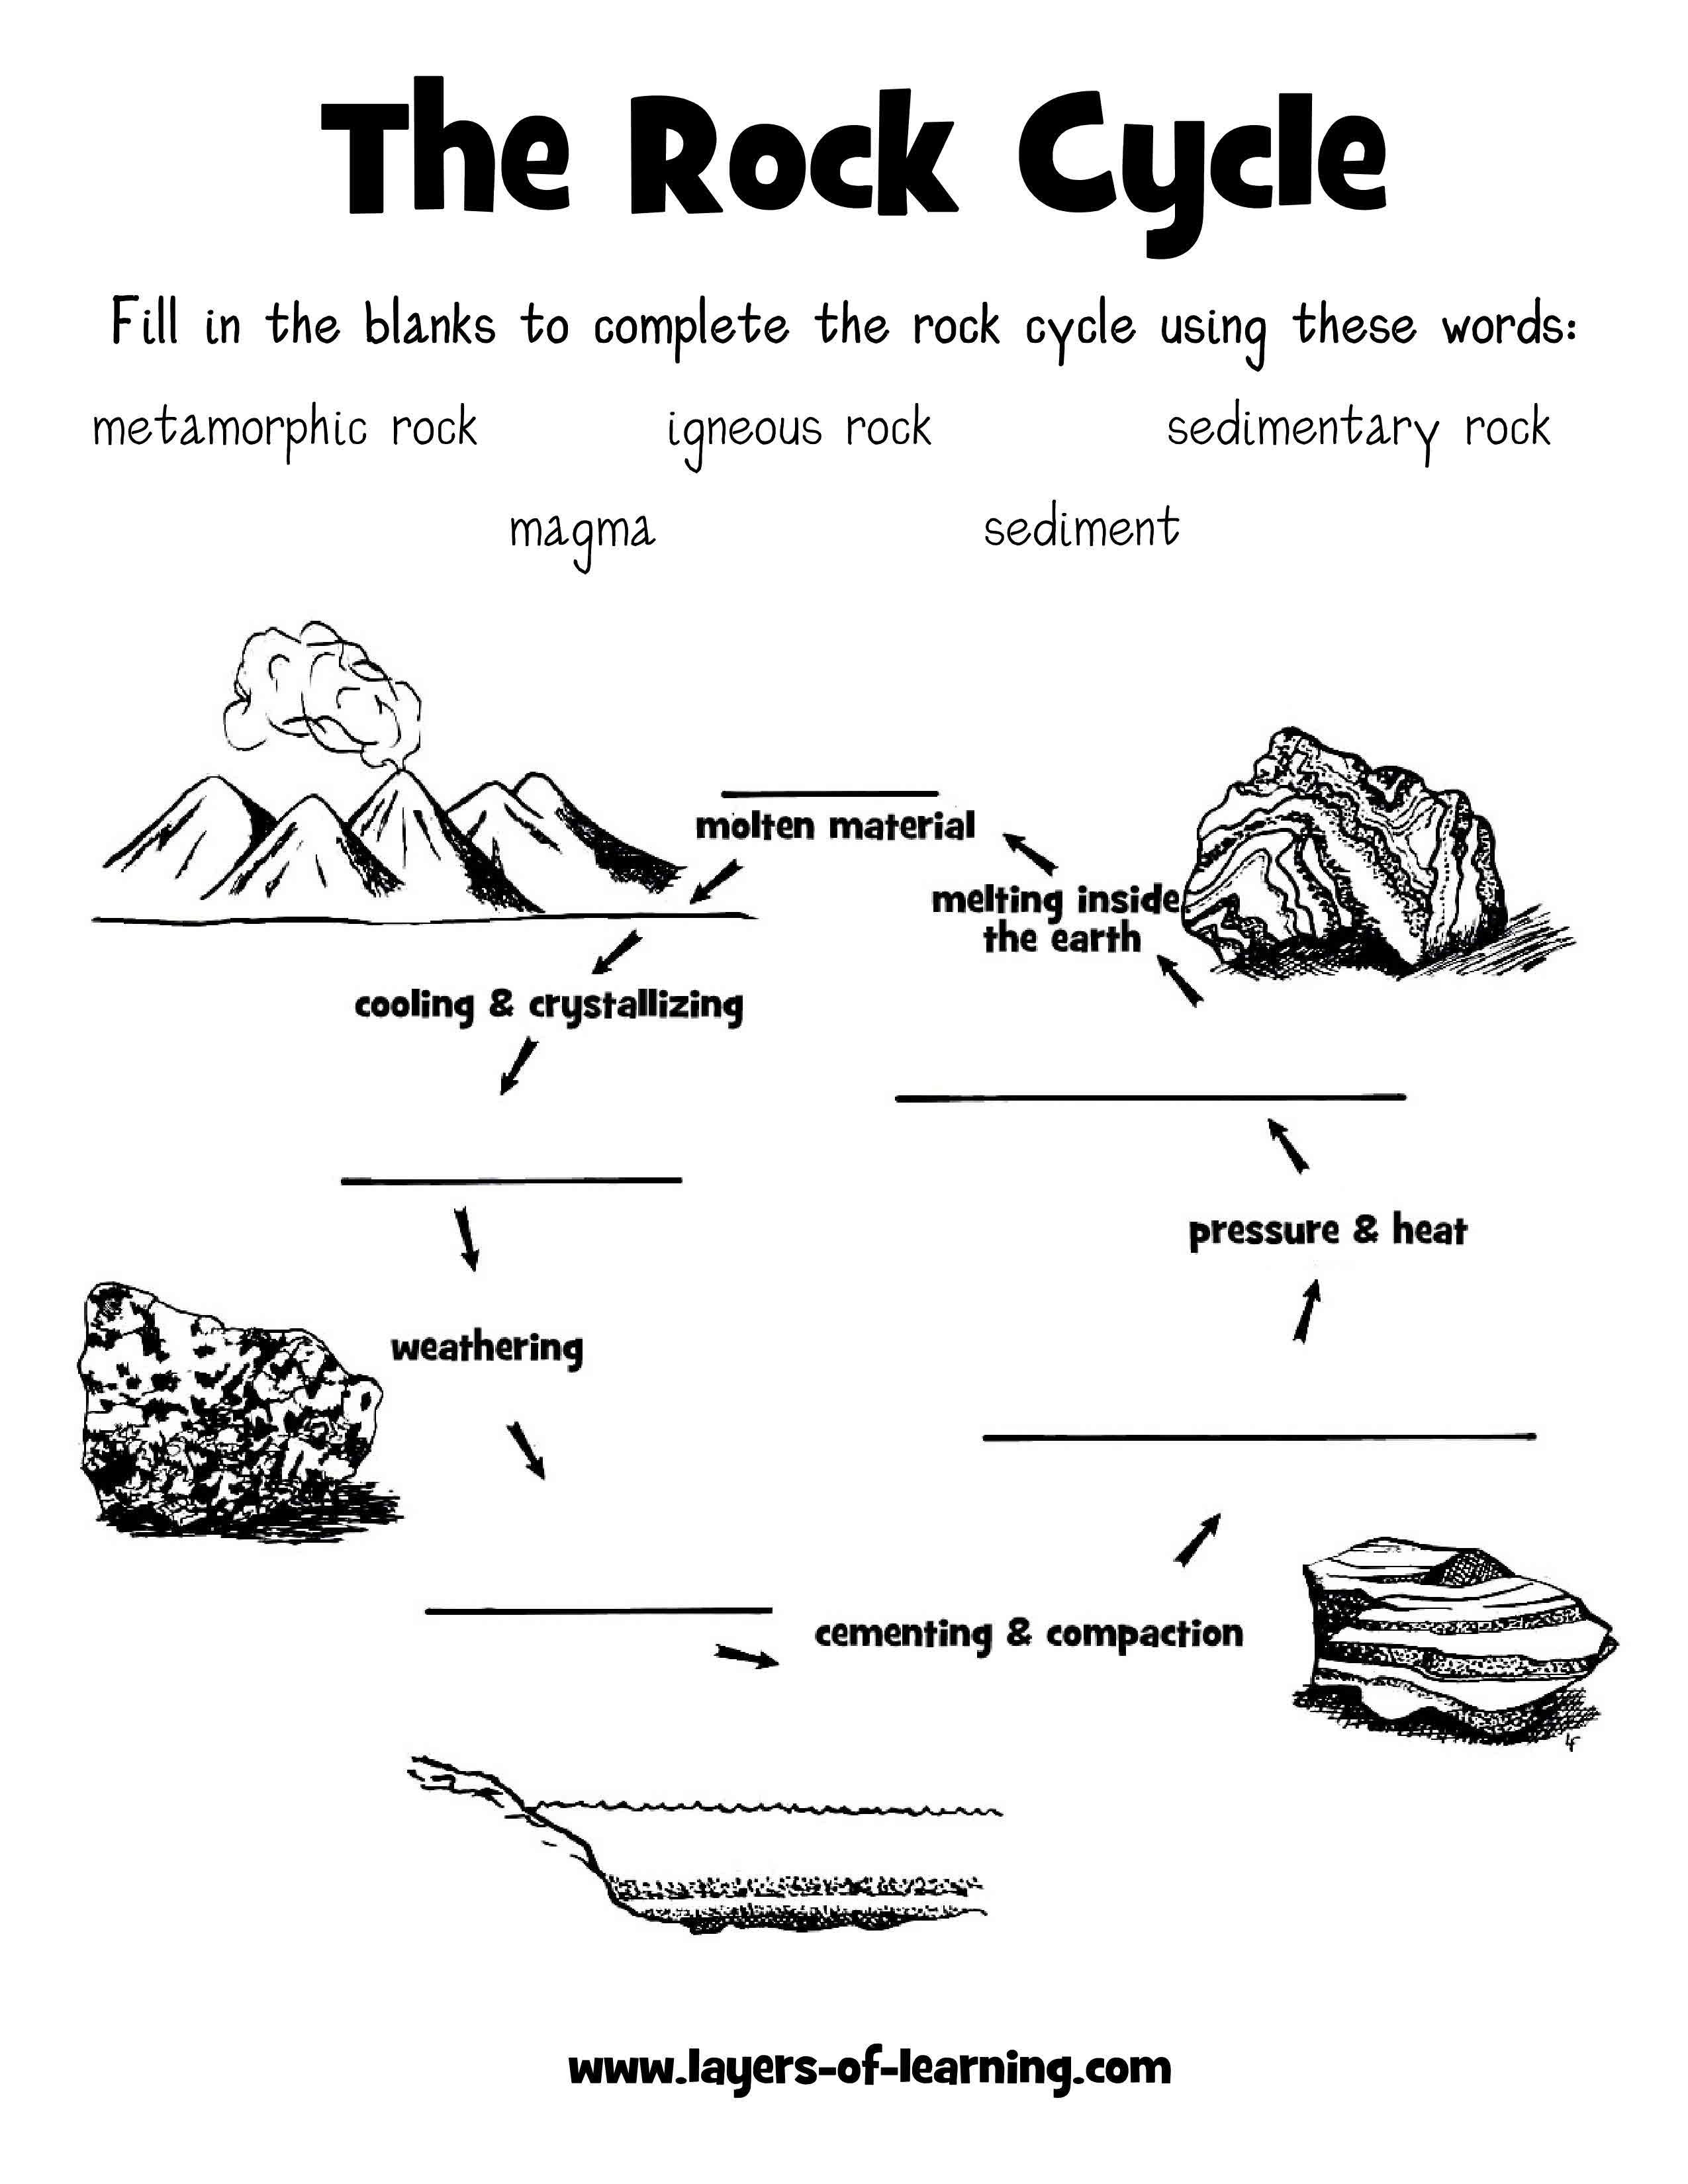 medium resolution of rock cycle worksheet - Layers of Learning   Earth science lessons